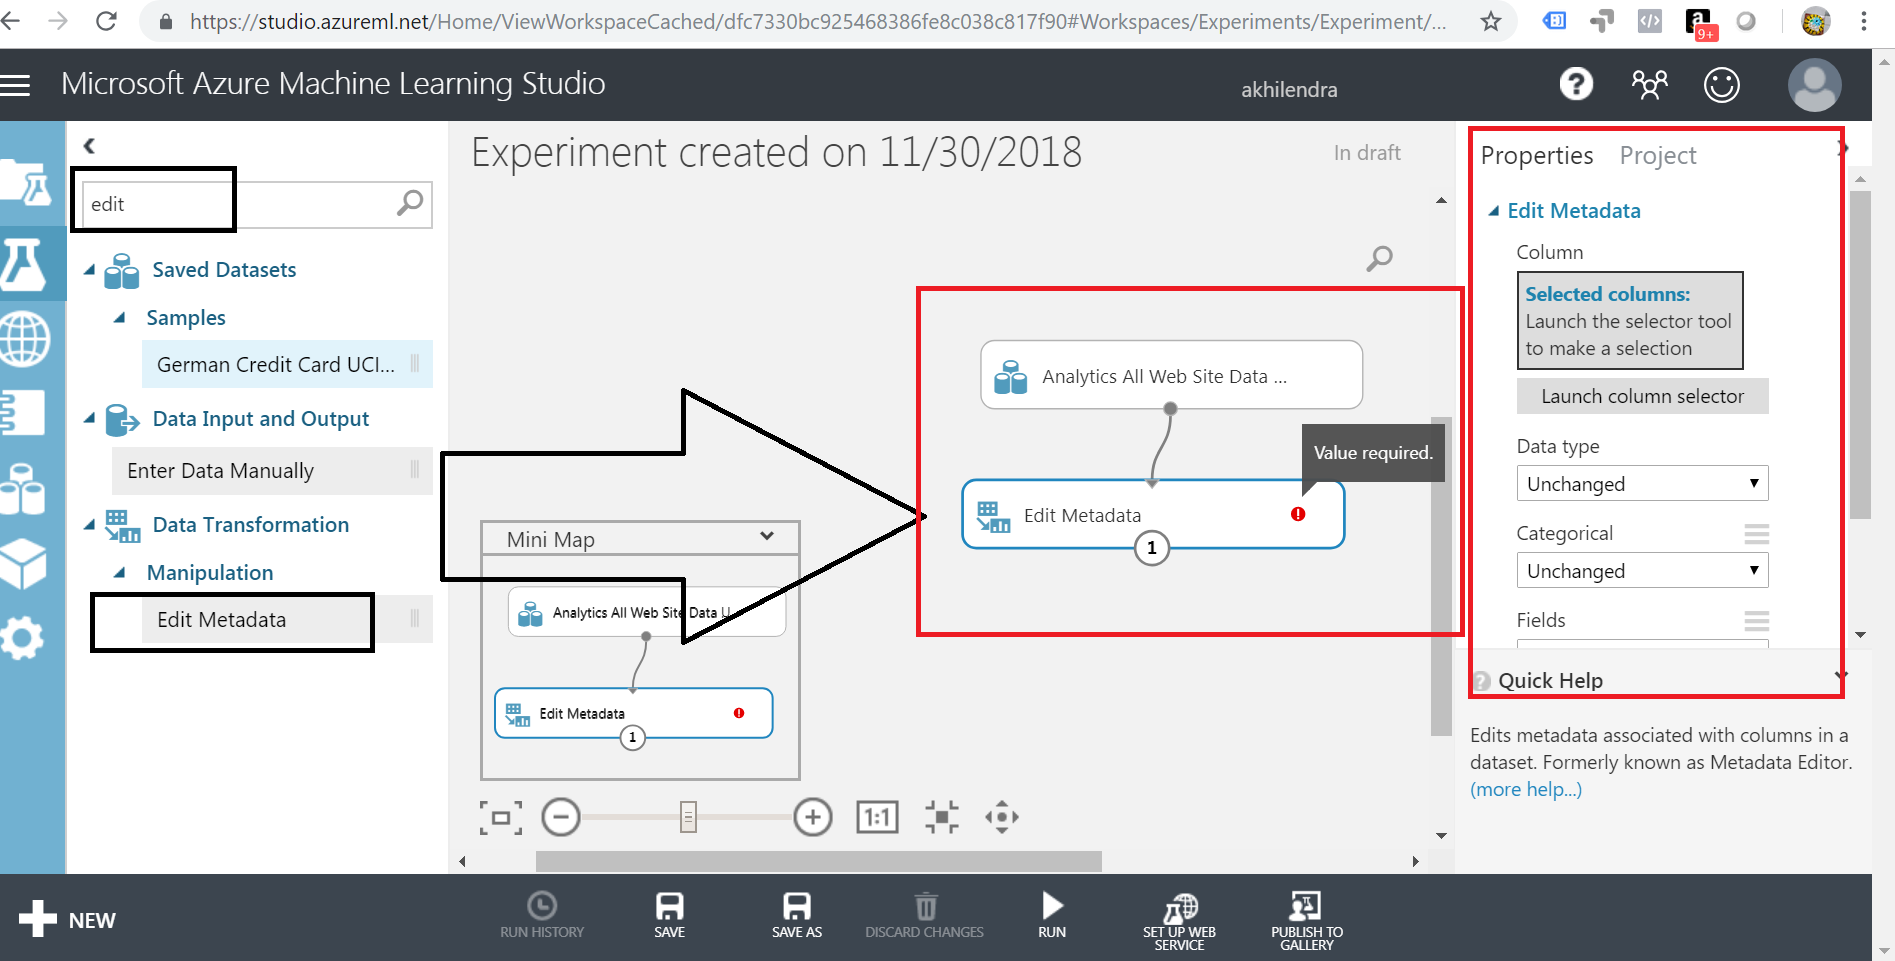 edit metadata in azure ml studio